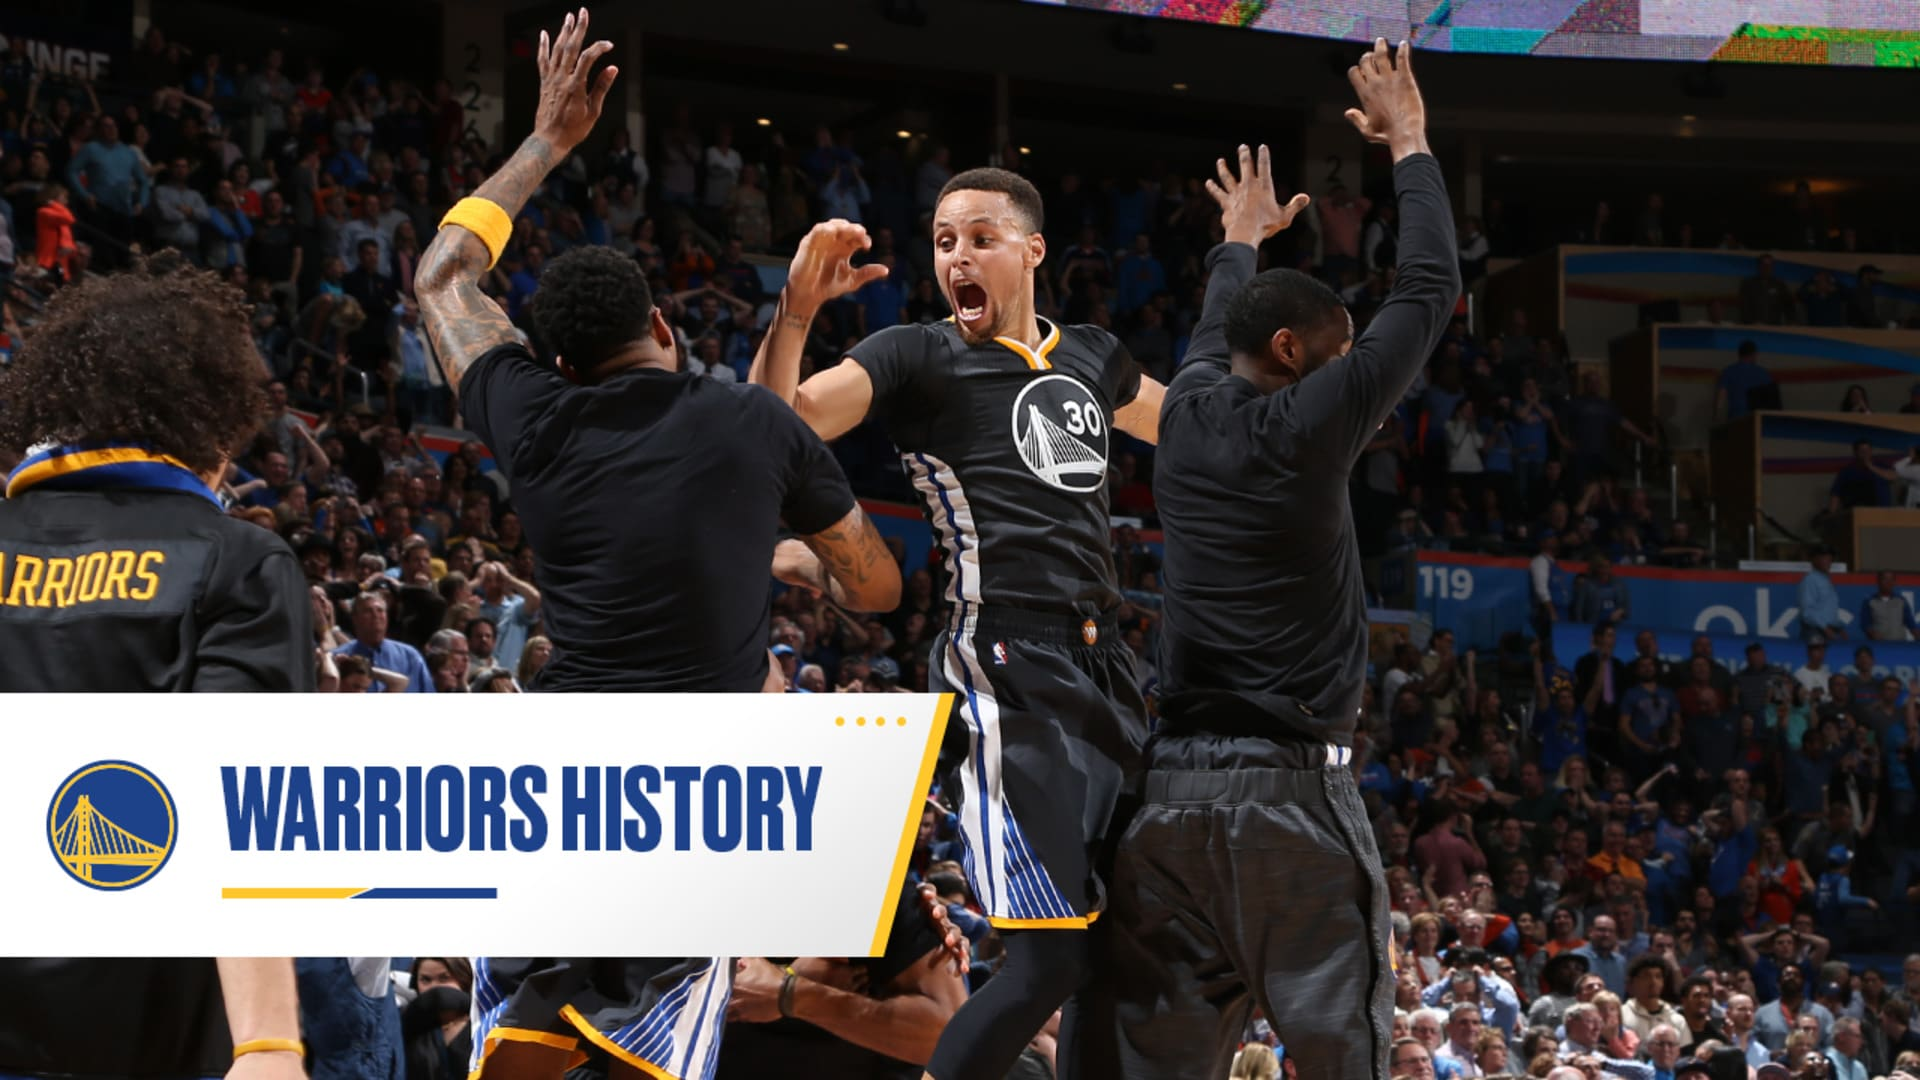 Feb. 27, 2016: Stephen Curry Makes 38-Foot Game-Winner